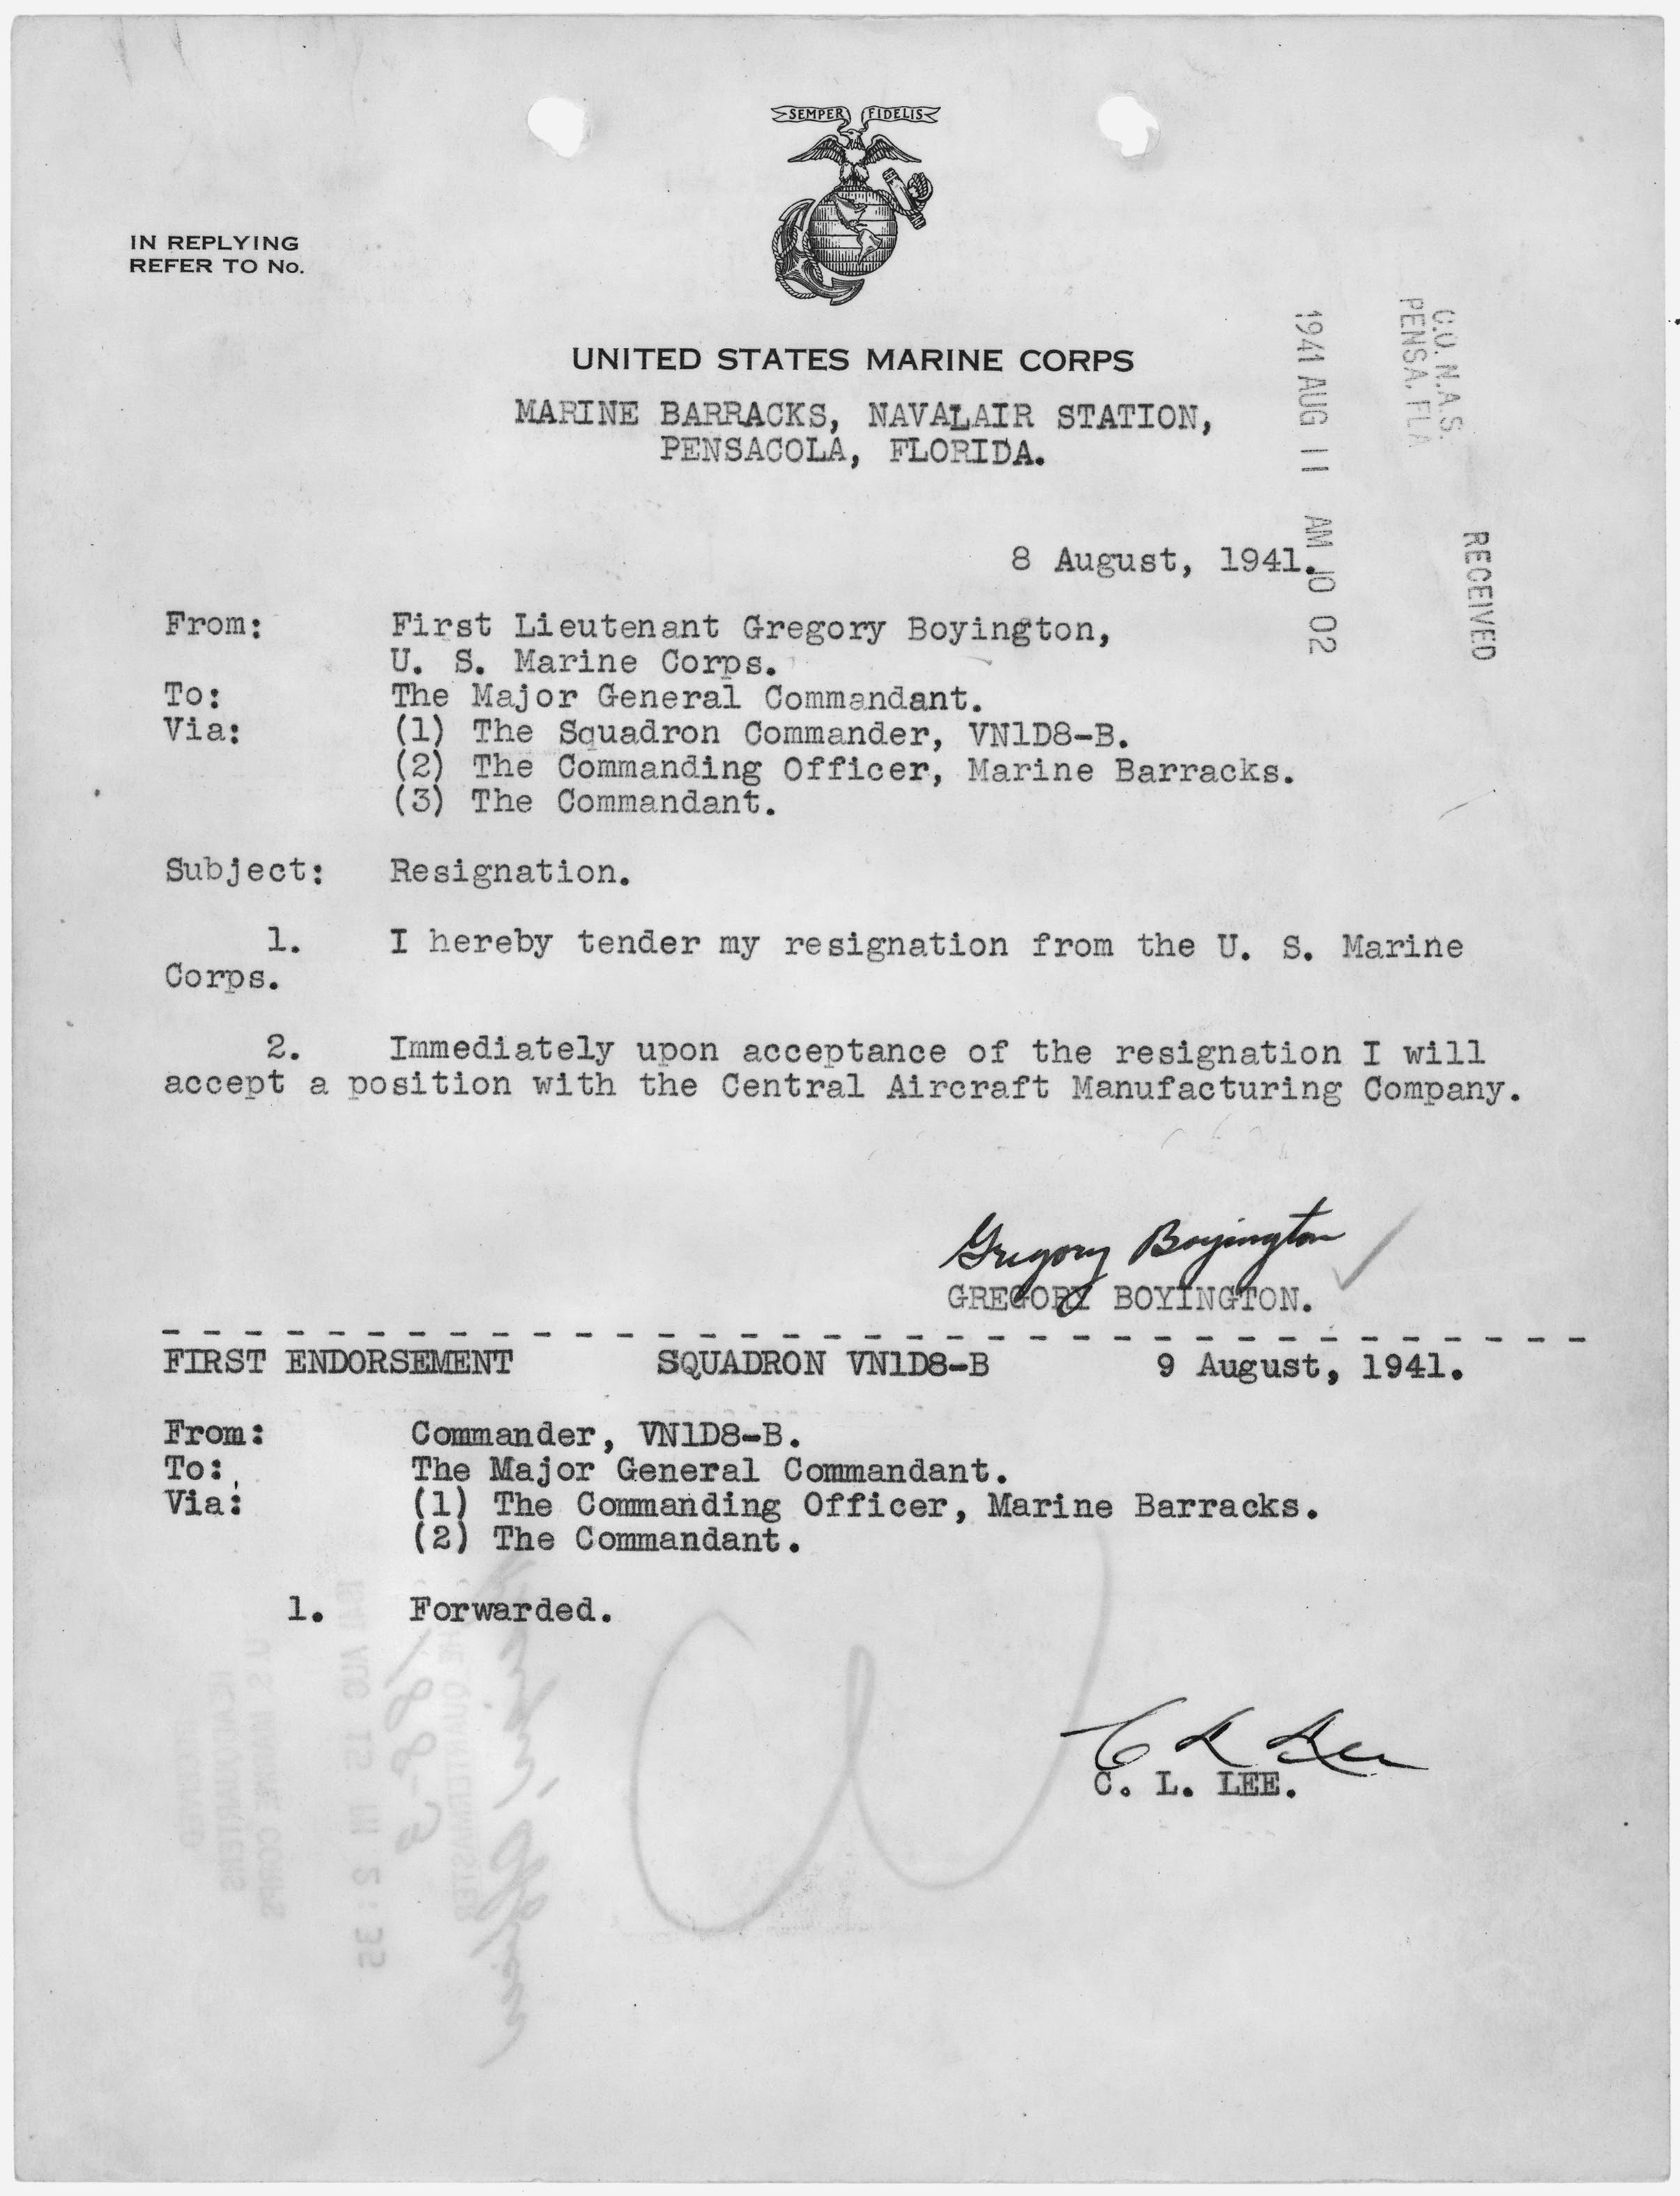 Fileletter Of Resignation From The U S Marine Corps To